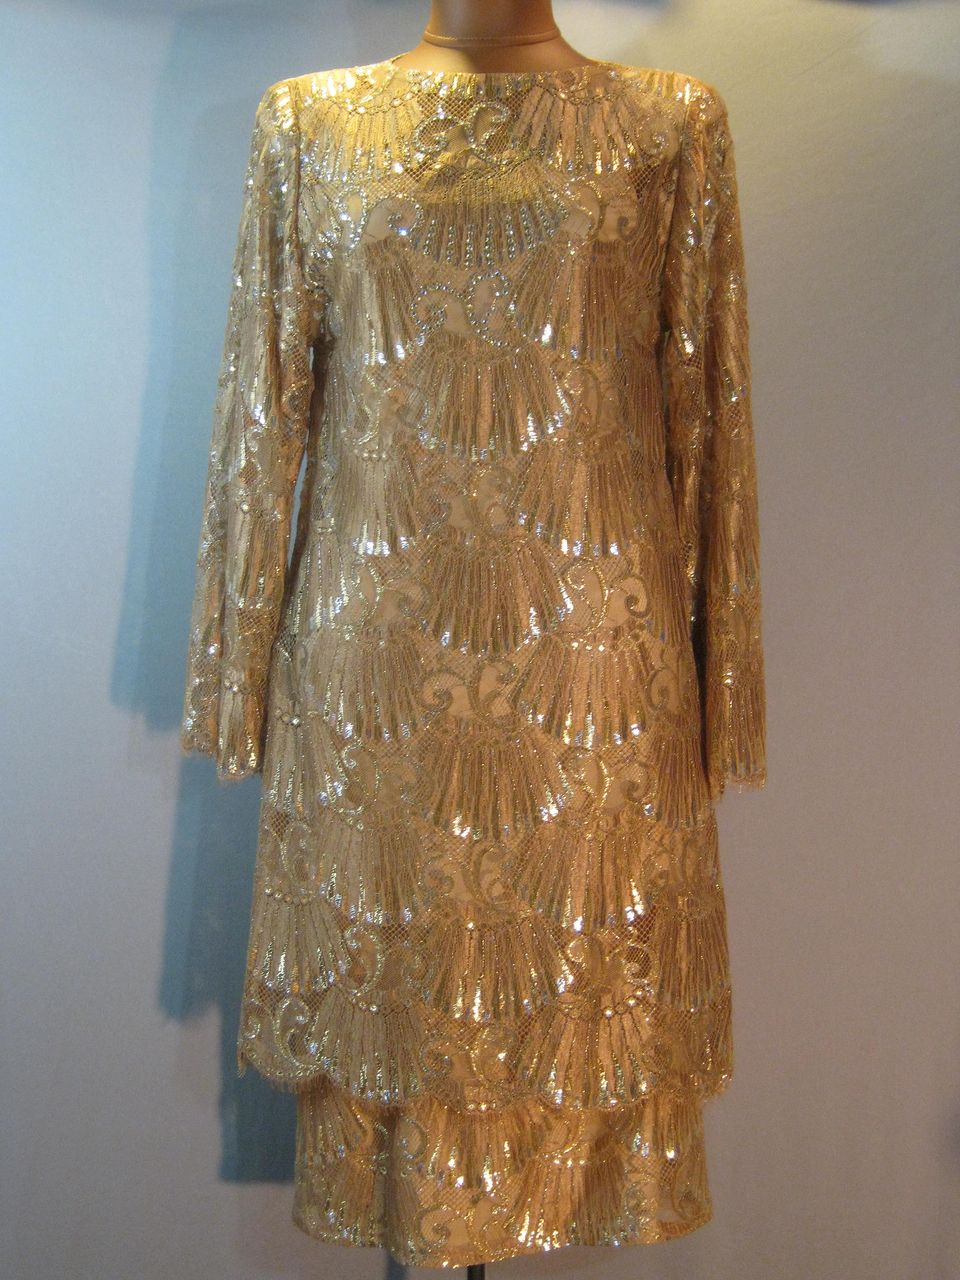 Couture Mollie Parnis Lace Dress.....